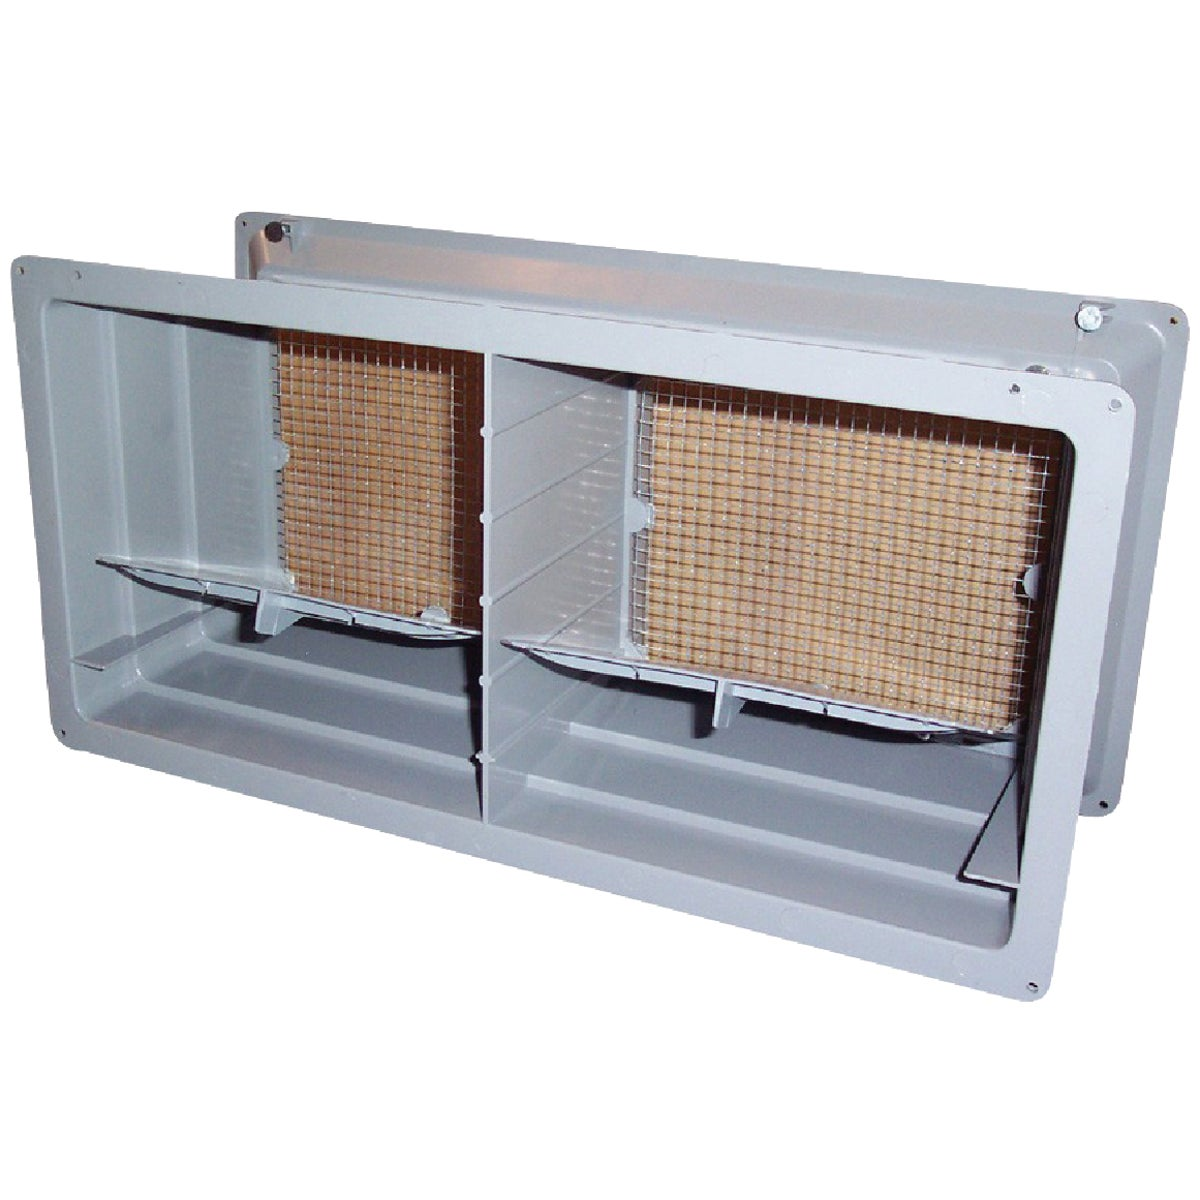 "8"" FOUNDATION VENT W/DMP - 559029 by Noll/norwesco Llc"